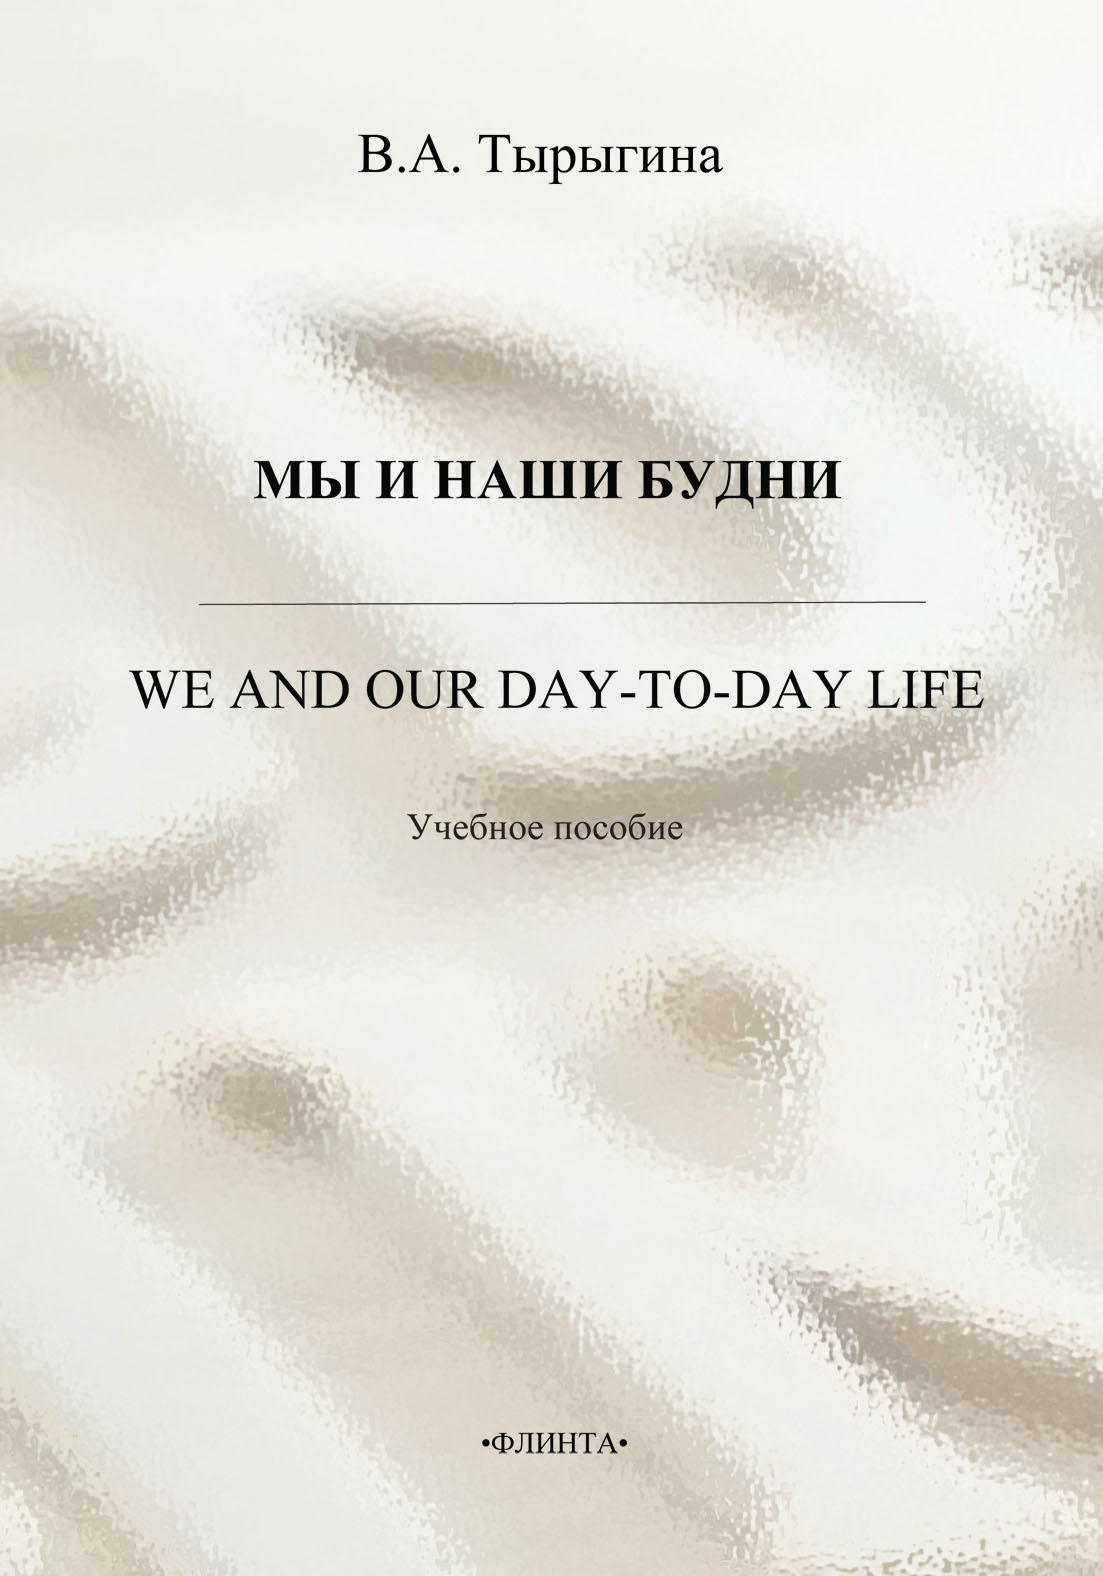 В. А. Тырыгина Мы и наши будни. We and our day-to-day life. Учебное пособие bp herbert bury russian life to day